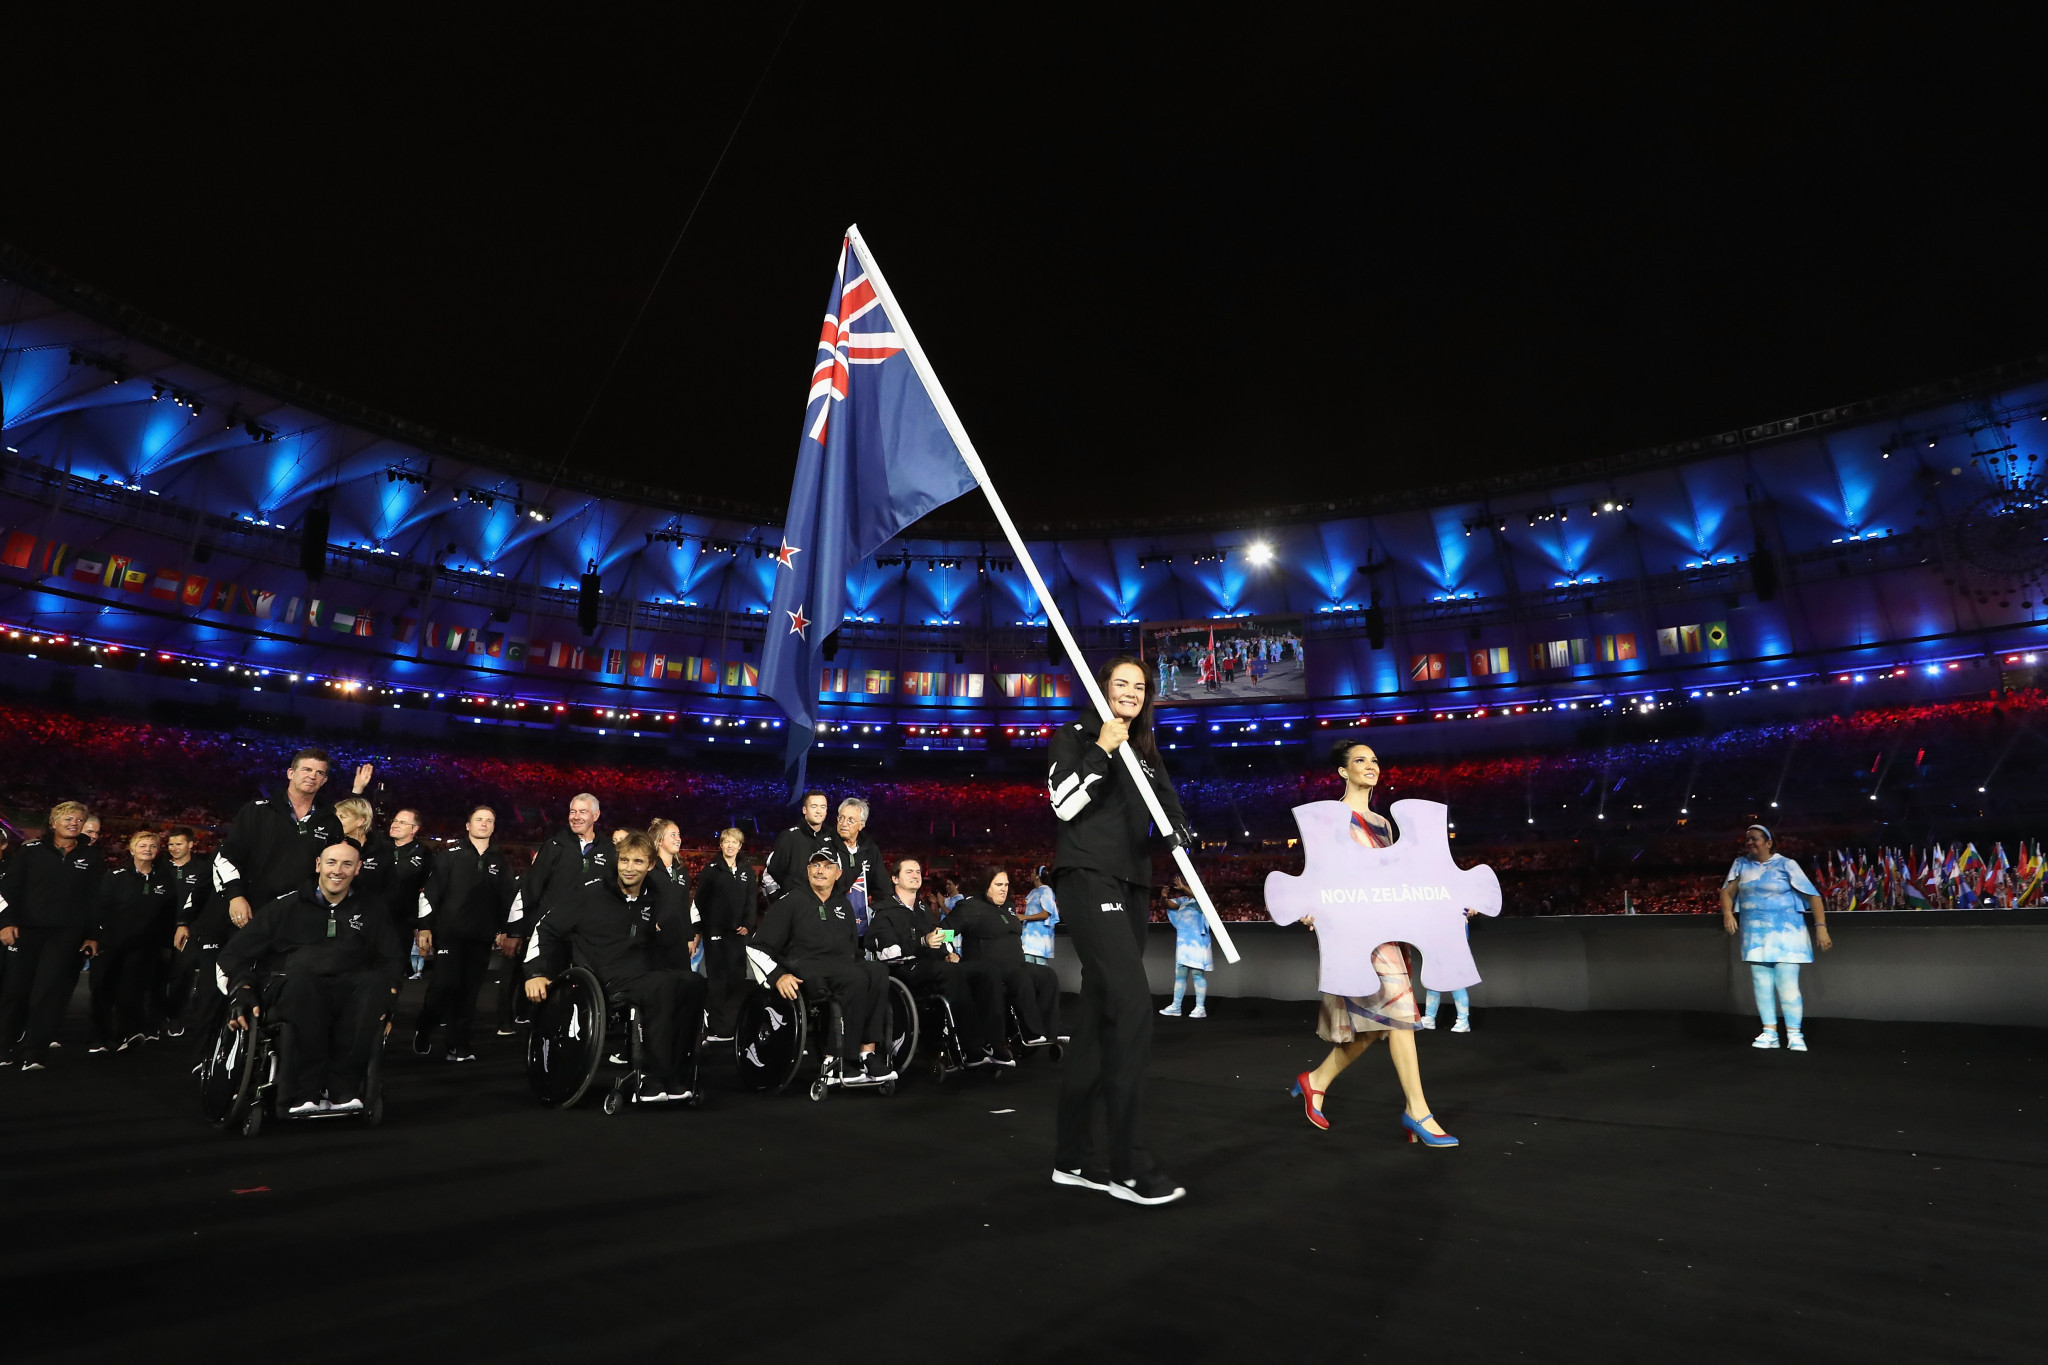 TVNZ and Attitude Pictures also worked on Rio 2016 together ©Getty Images